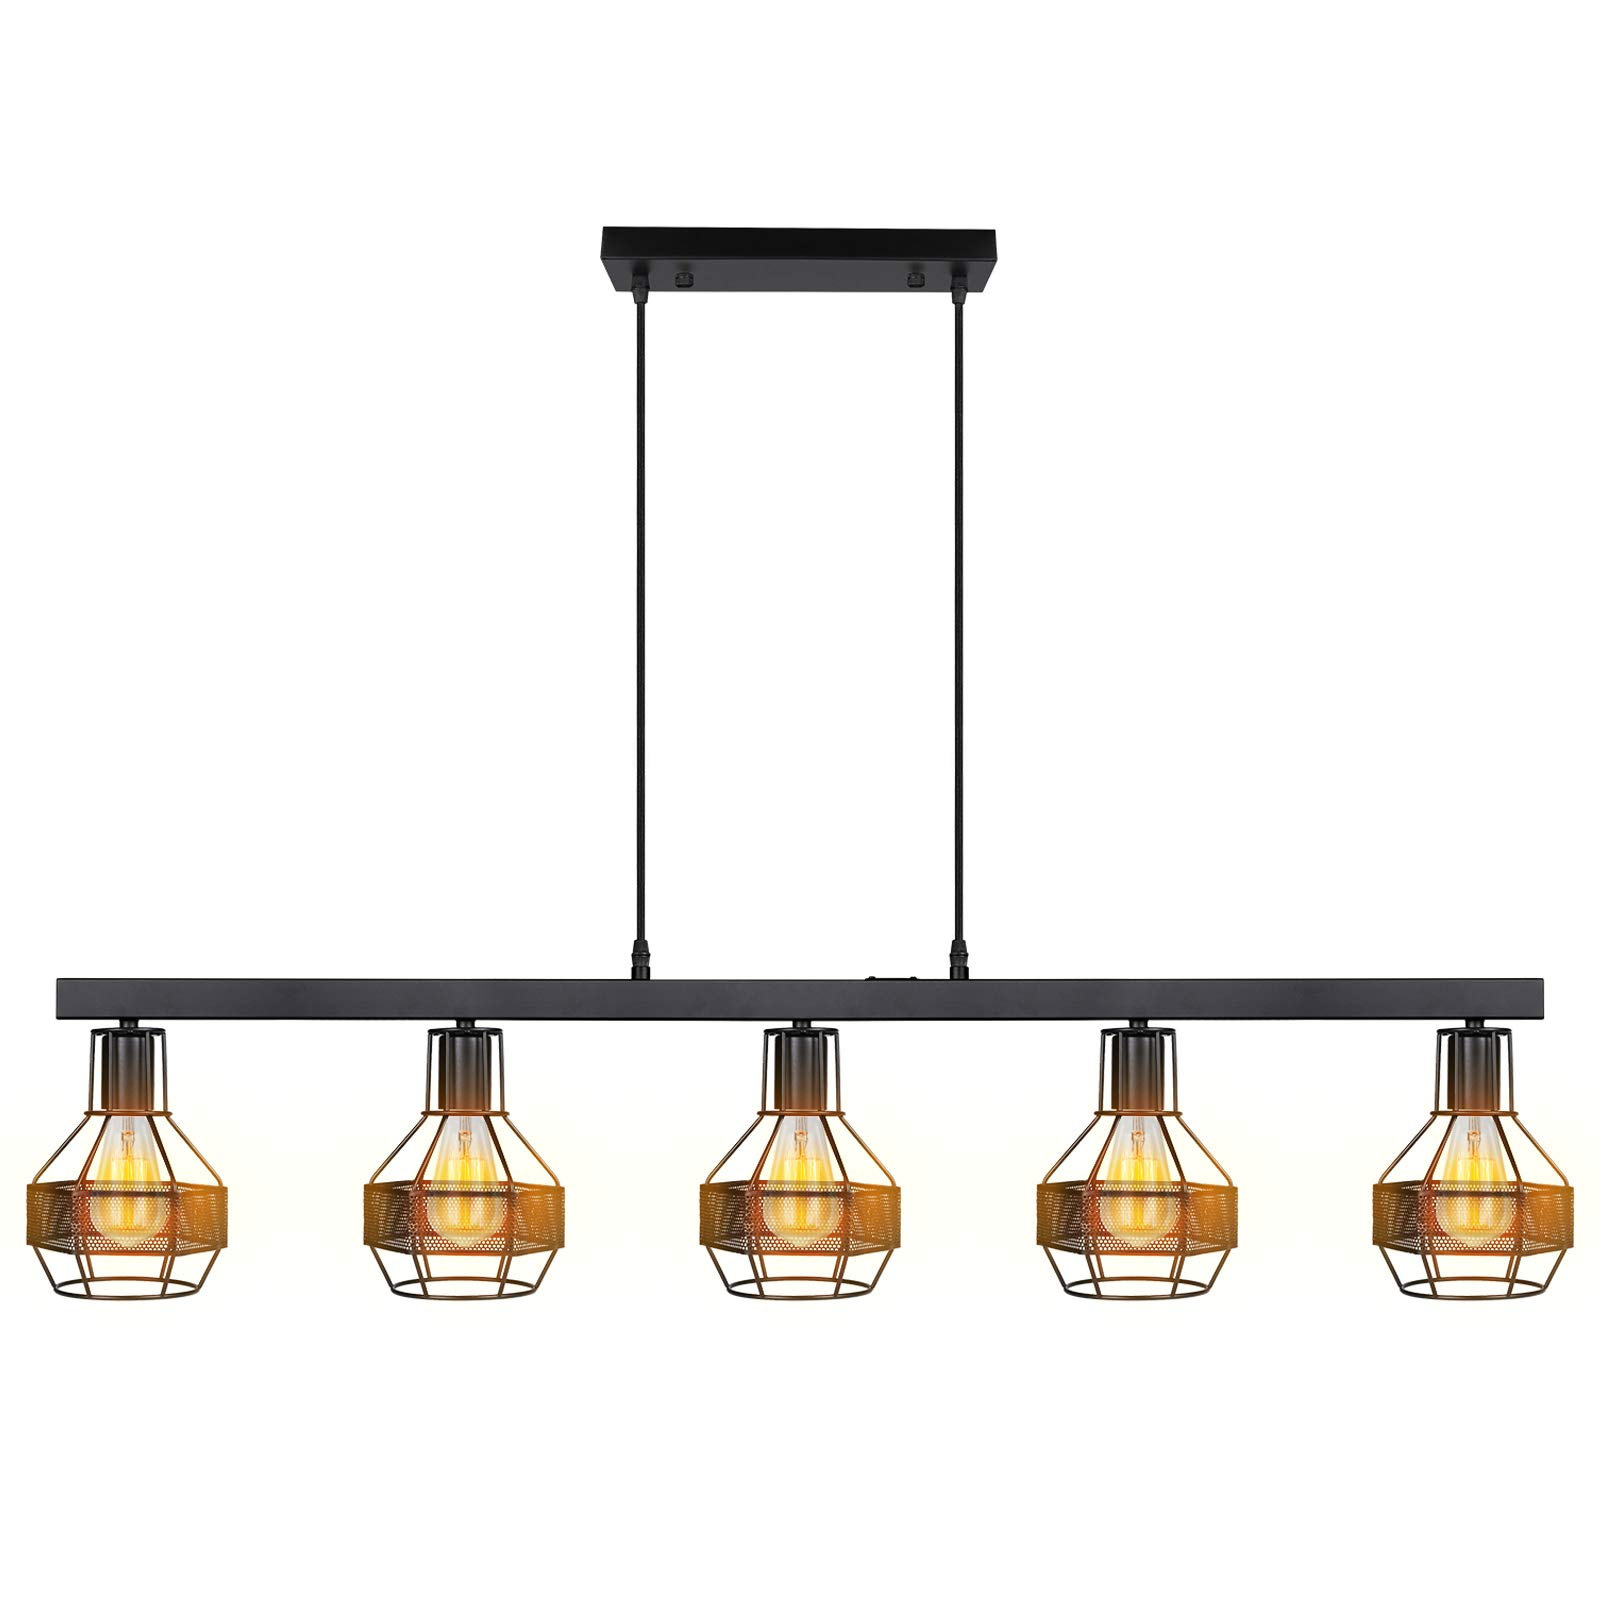 Paragon Home Black Metal Long Kitchen Island Light, 43.3''L x 9.06''H, 70''H Adjustable Length, Dining Room Chandelier, Pendant Light Fixture, Kitchen Light Fixtures with E26 Sockets (Bulbs Not Included)